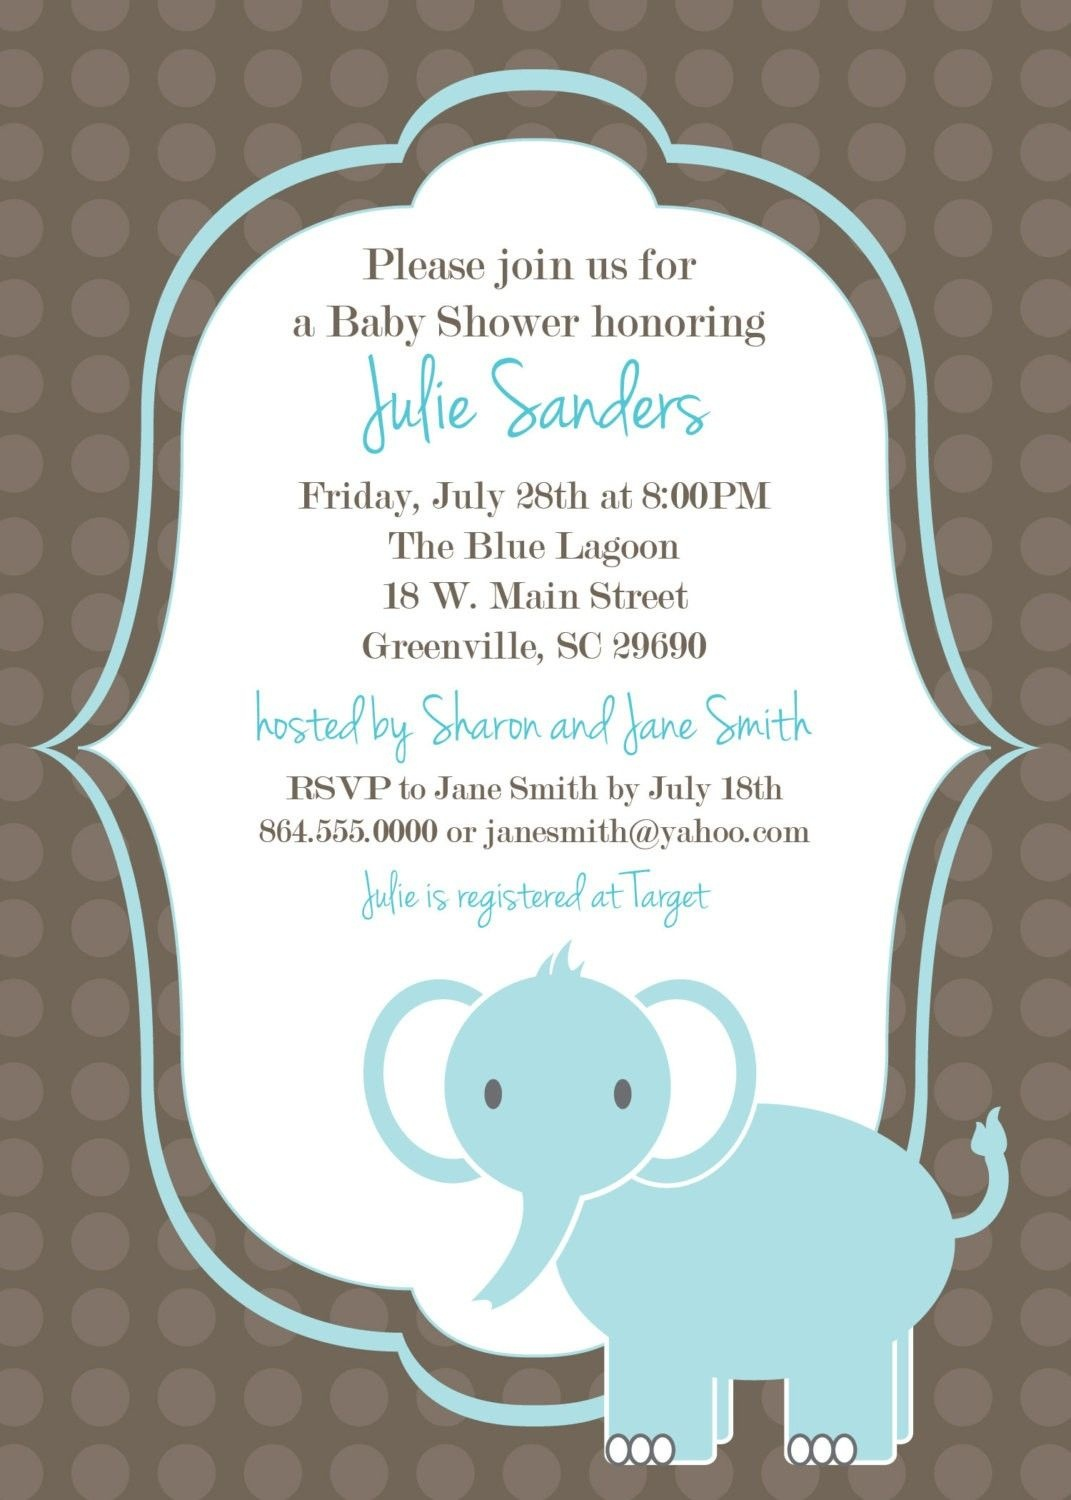 Download Free Template Got The Free Baby Shower Invitations - Create Your Own Baby Shower Invitations Free Printable